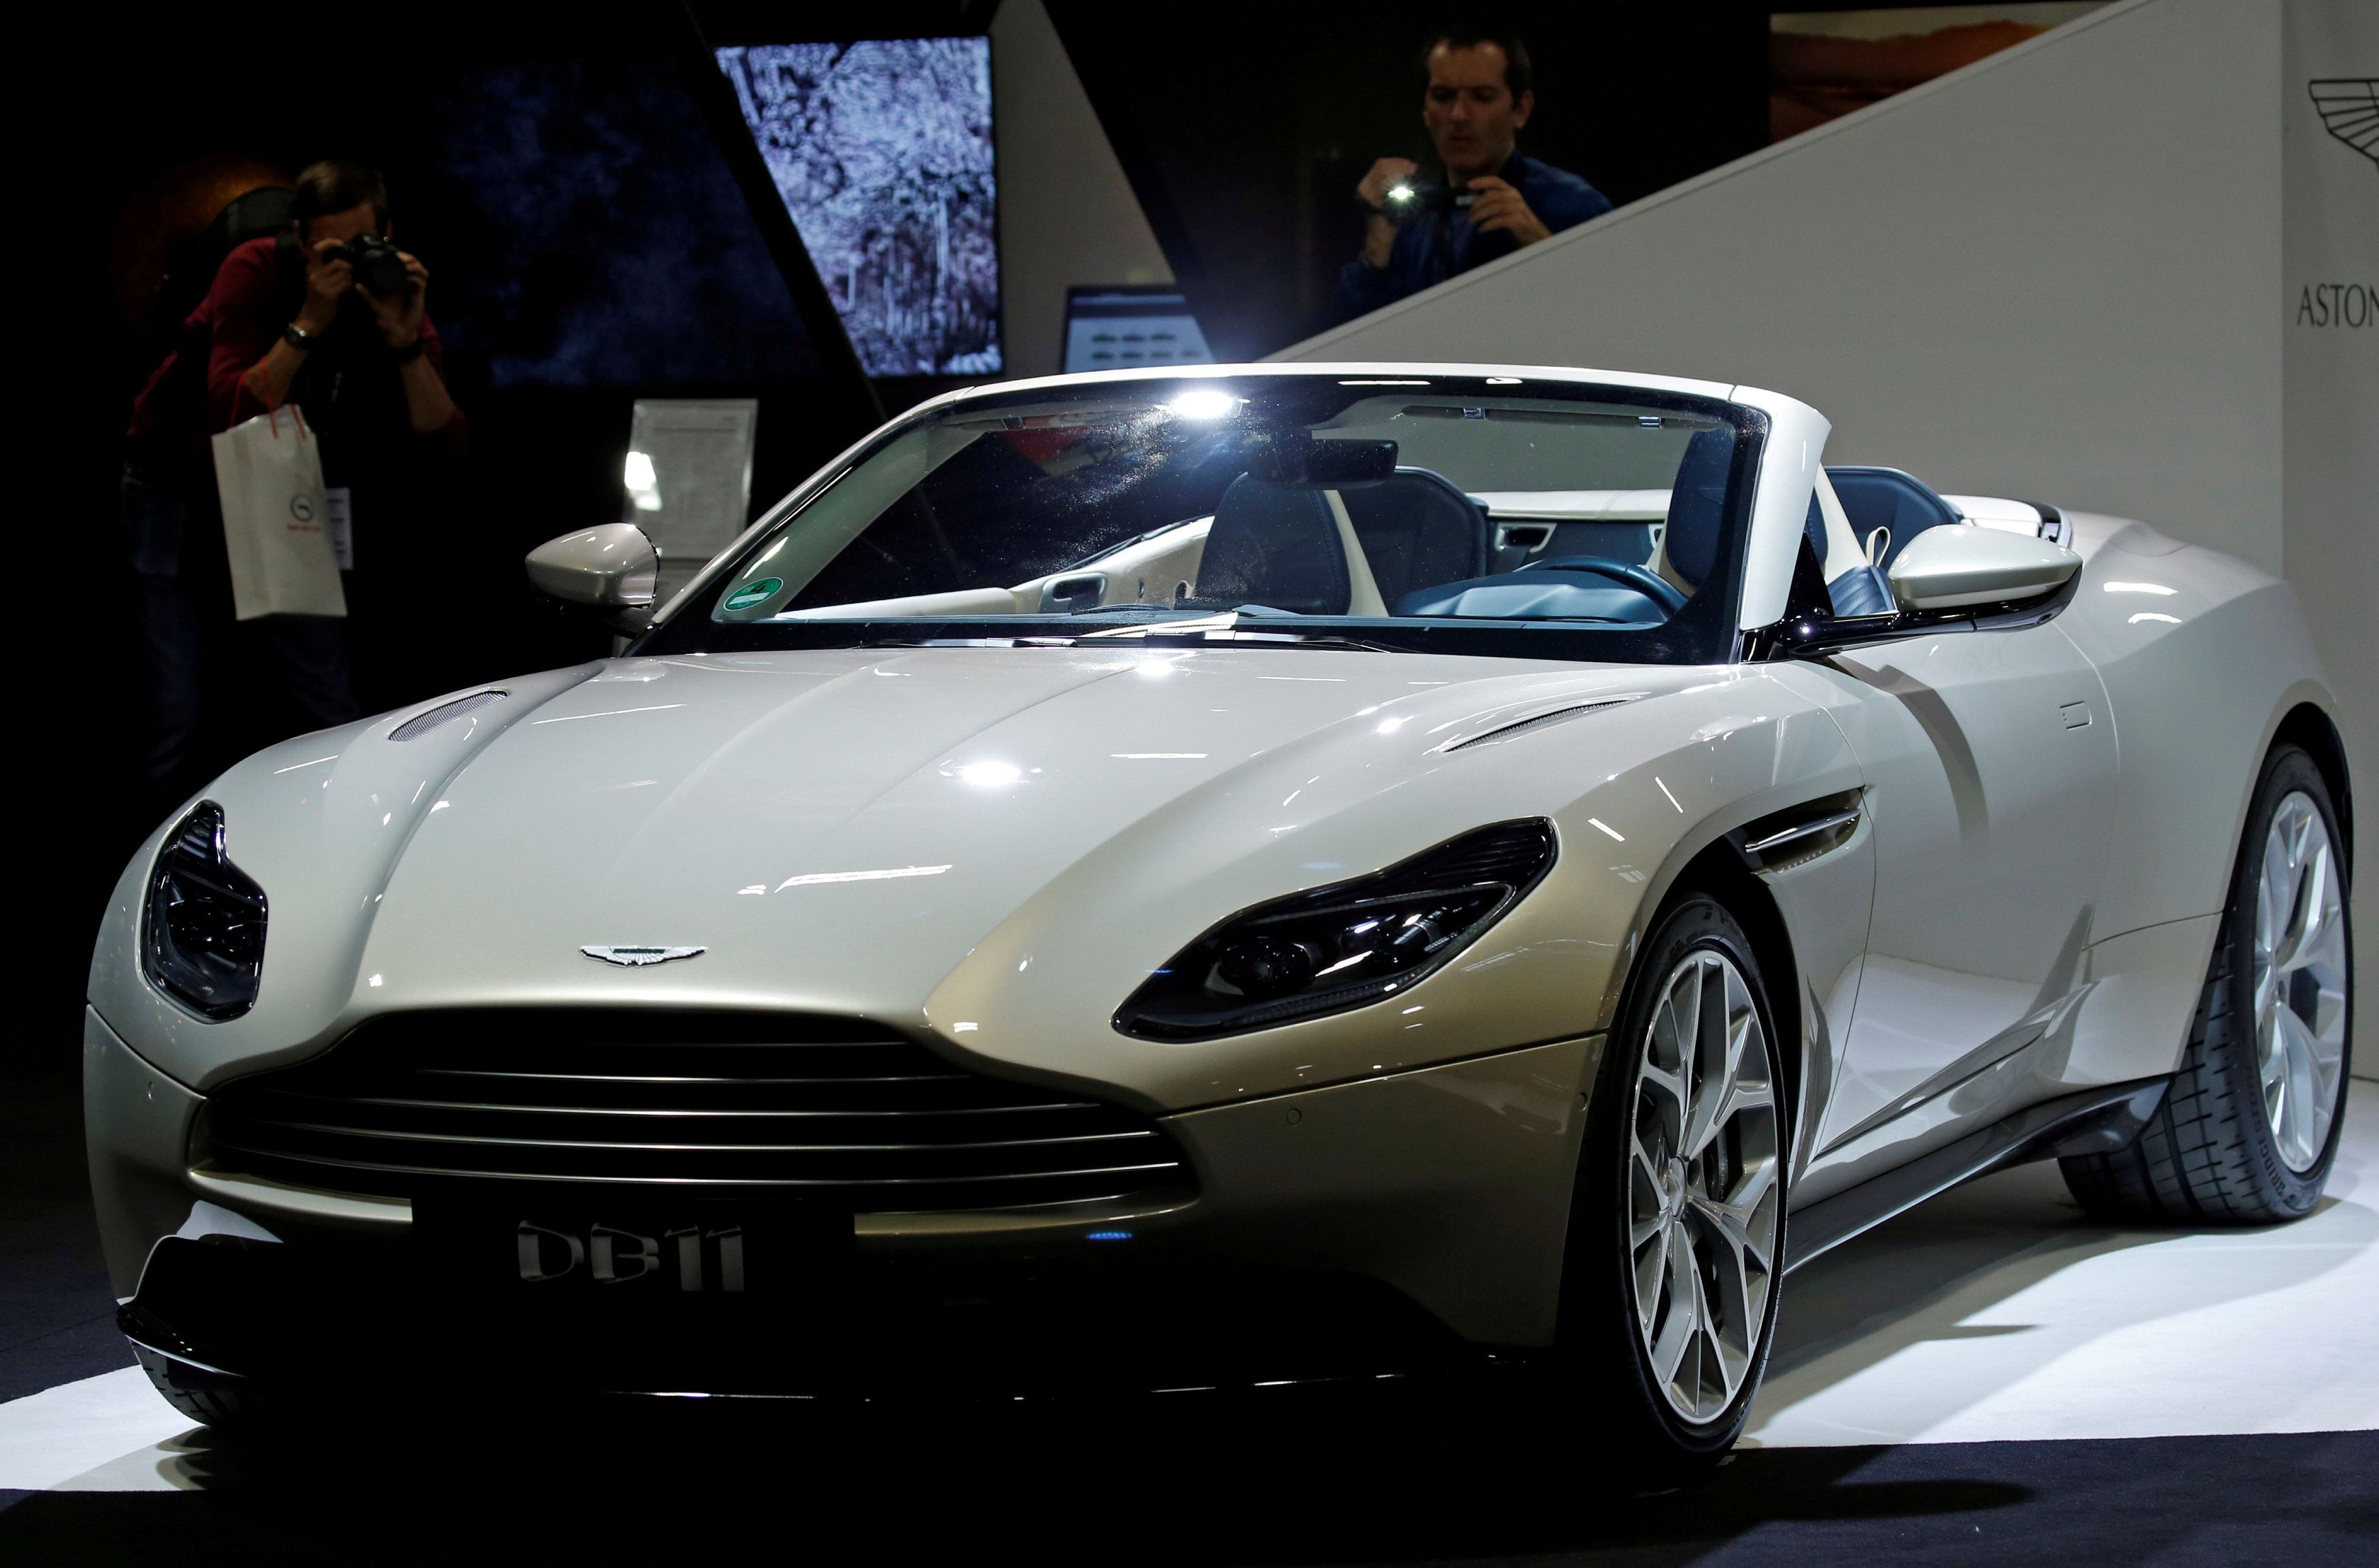 aston martin board approves air freight in brexit planning